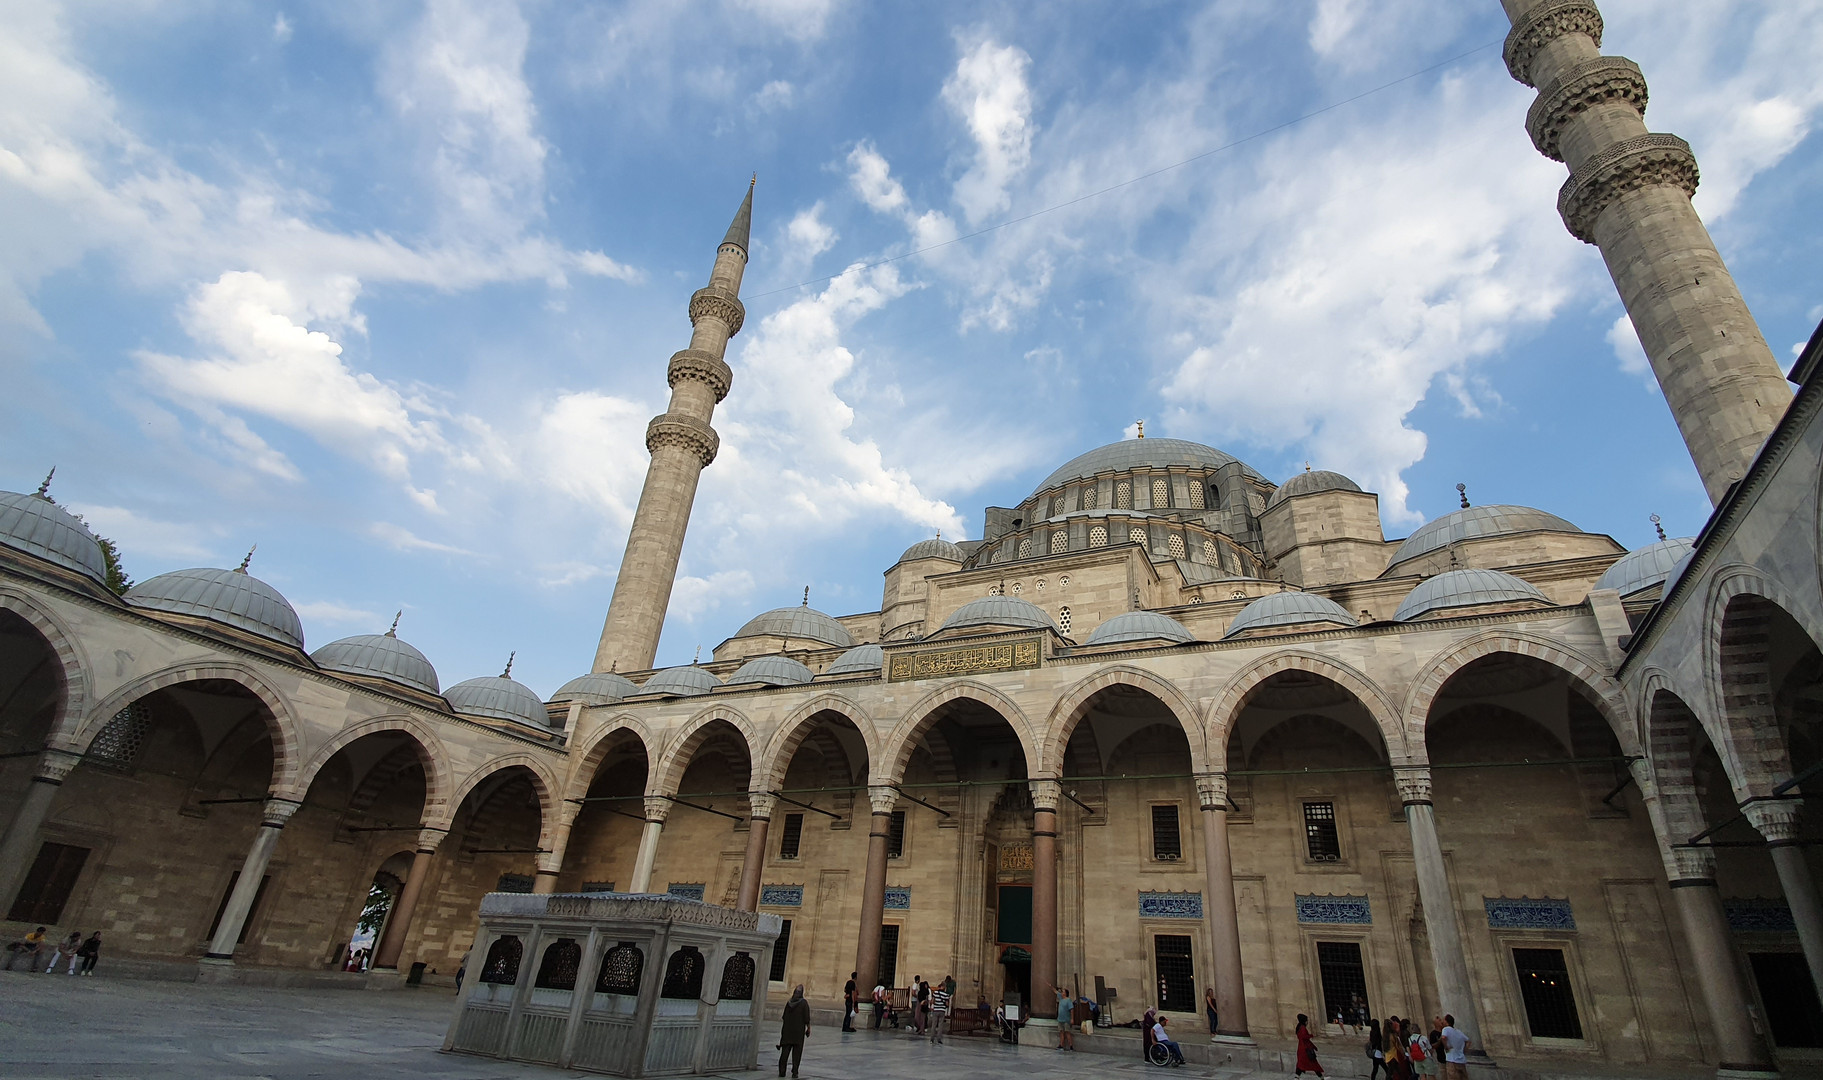 The forecourt of the Suleymaniye Mosque